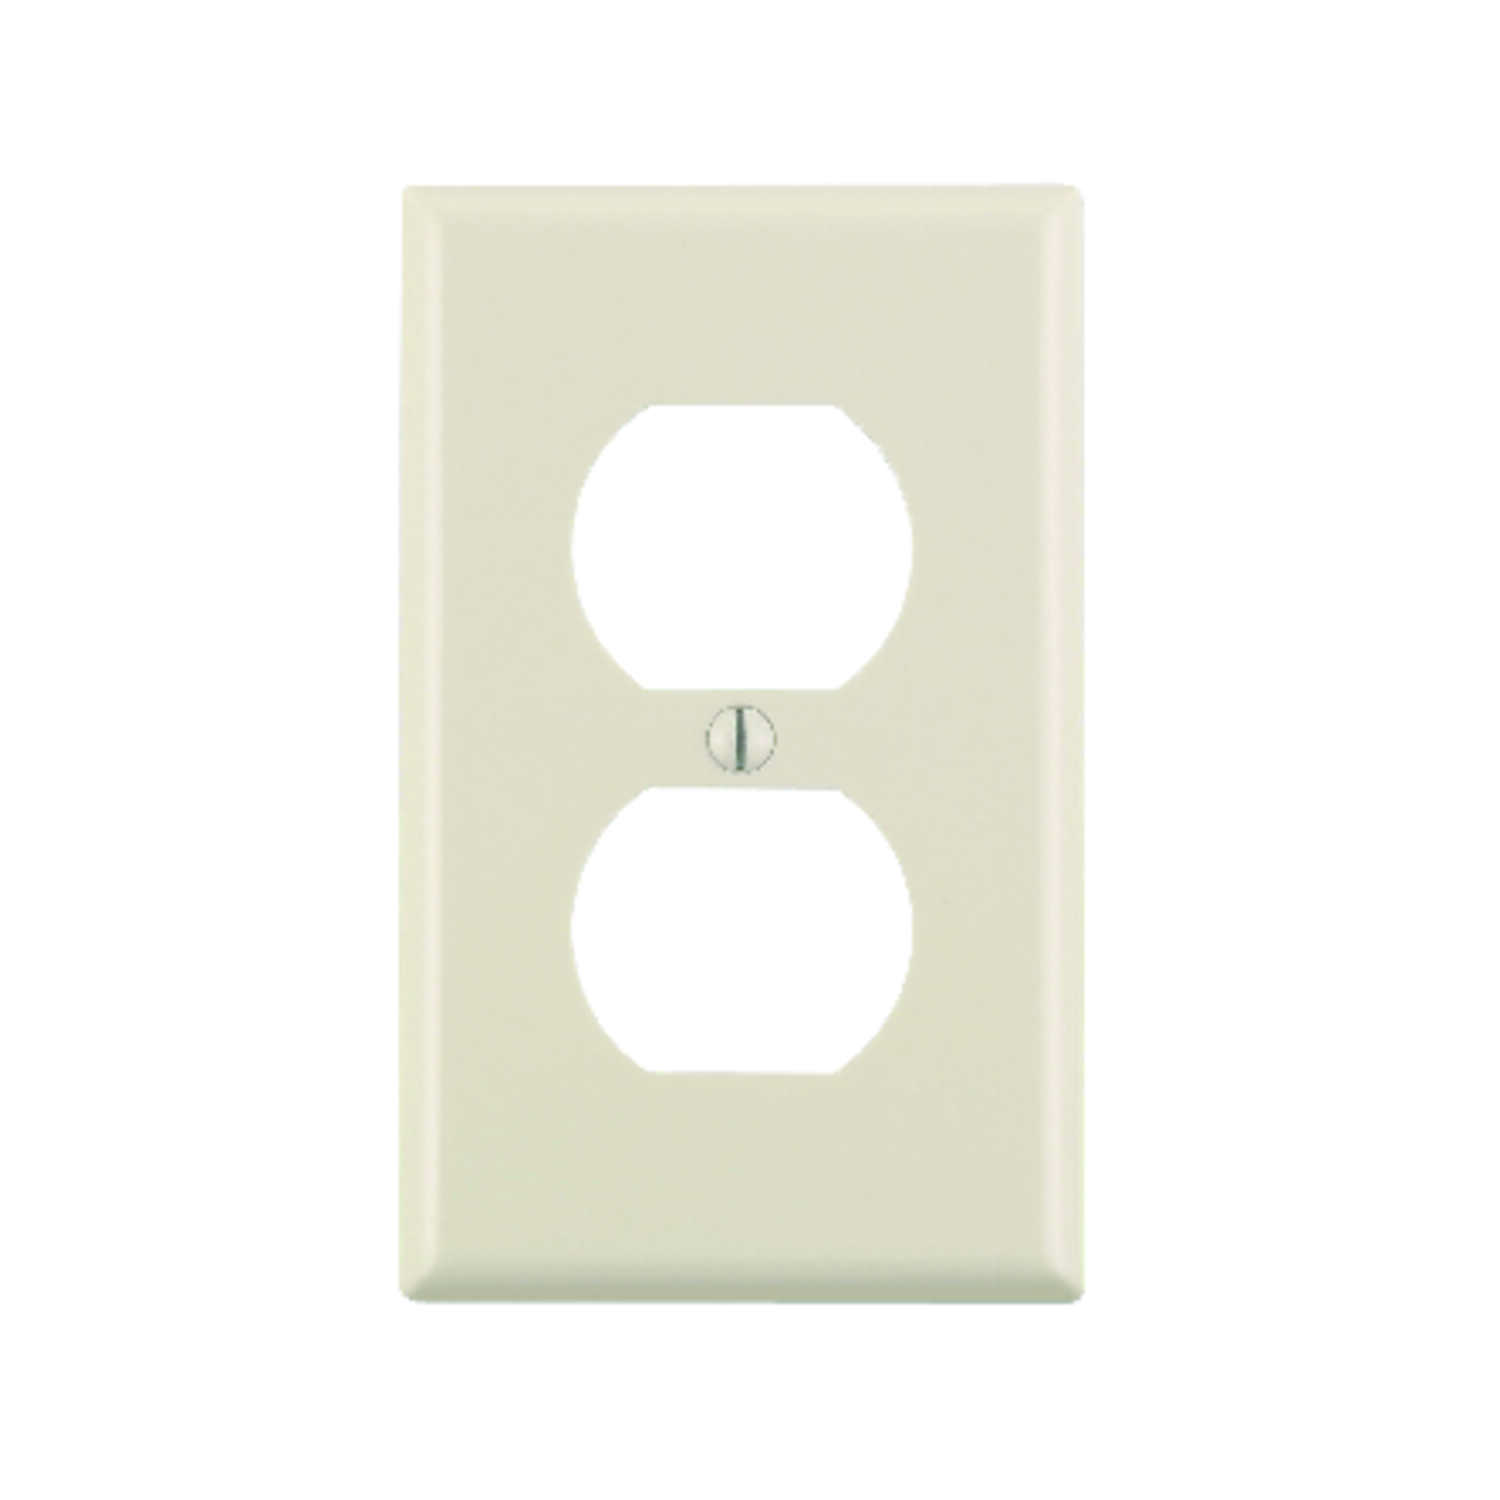 Leviton  Almond  1 gang Plastic  Duplex Outlet  Wall Plate  10 pk